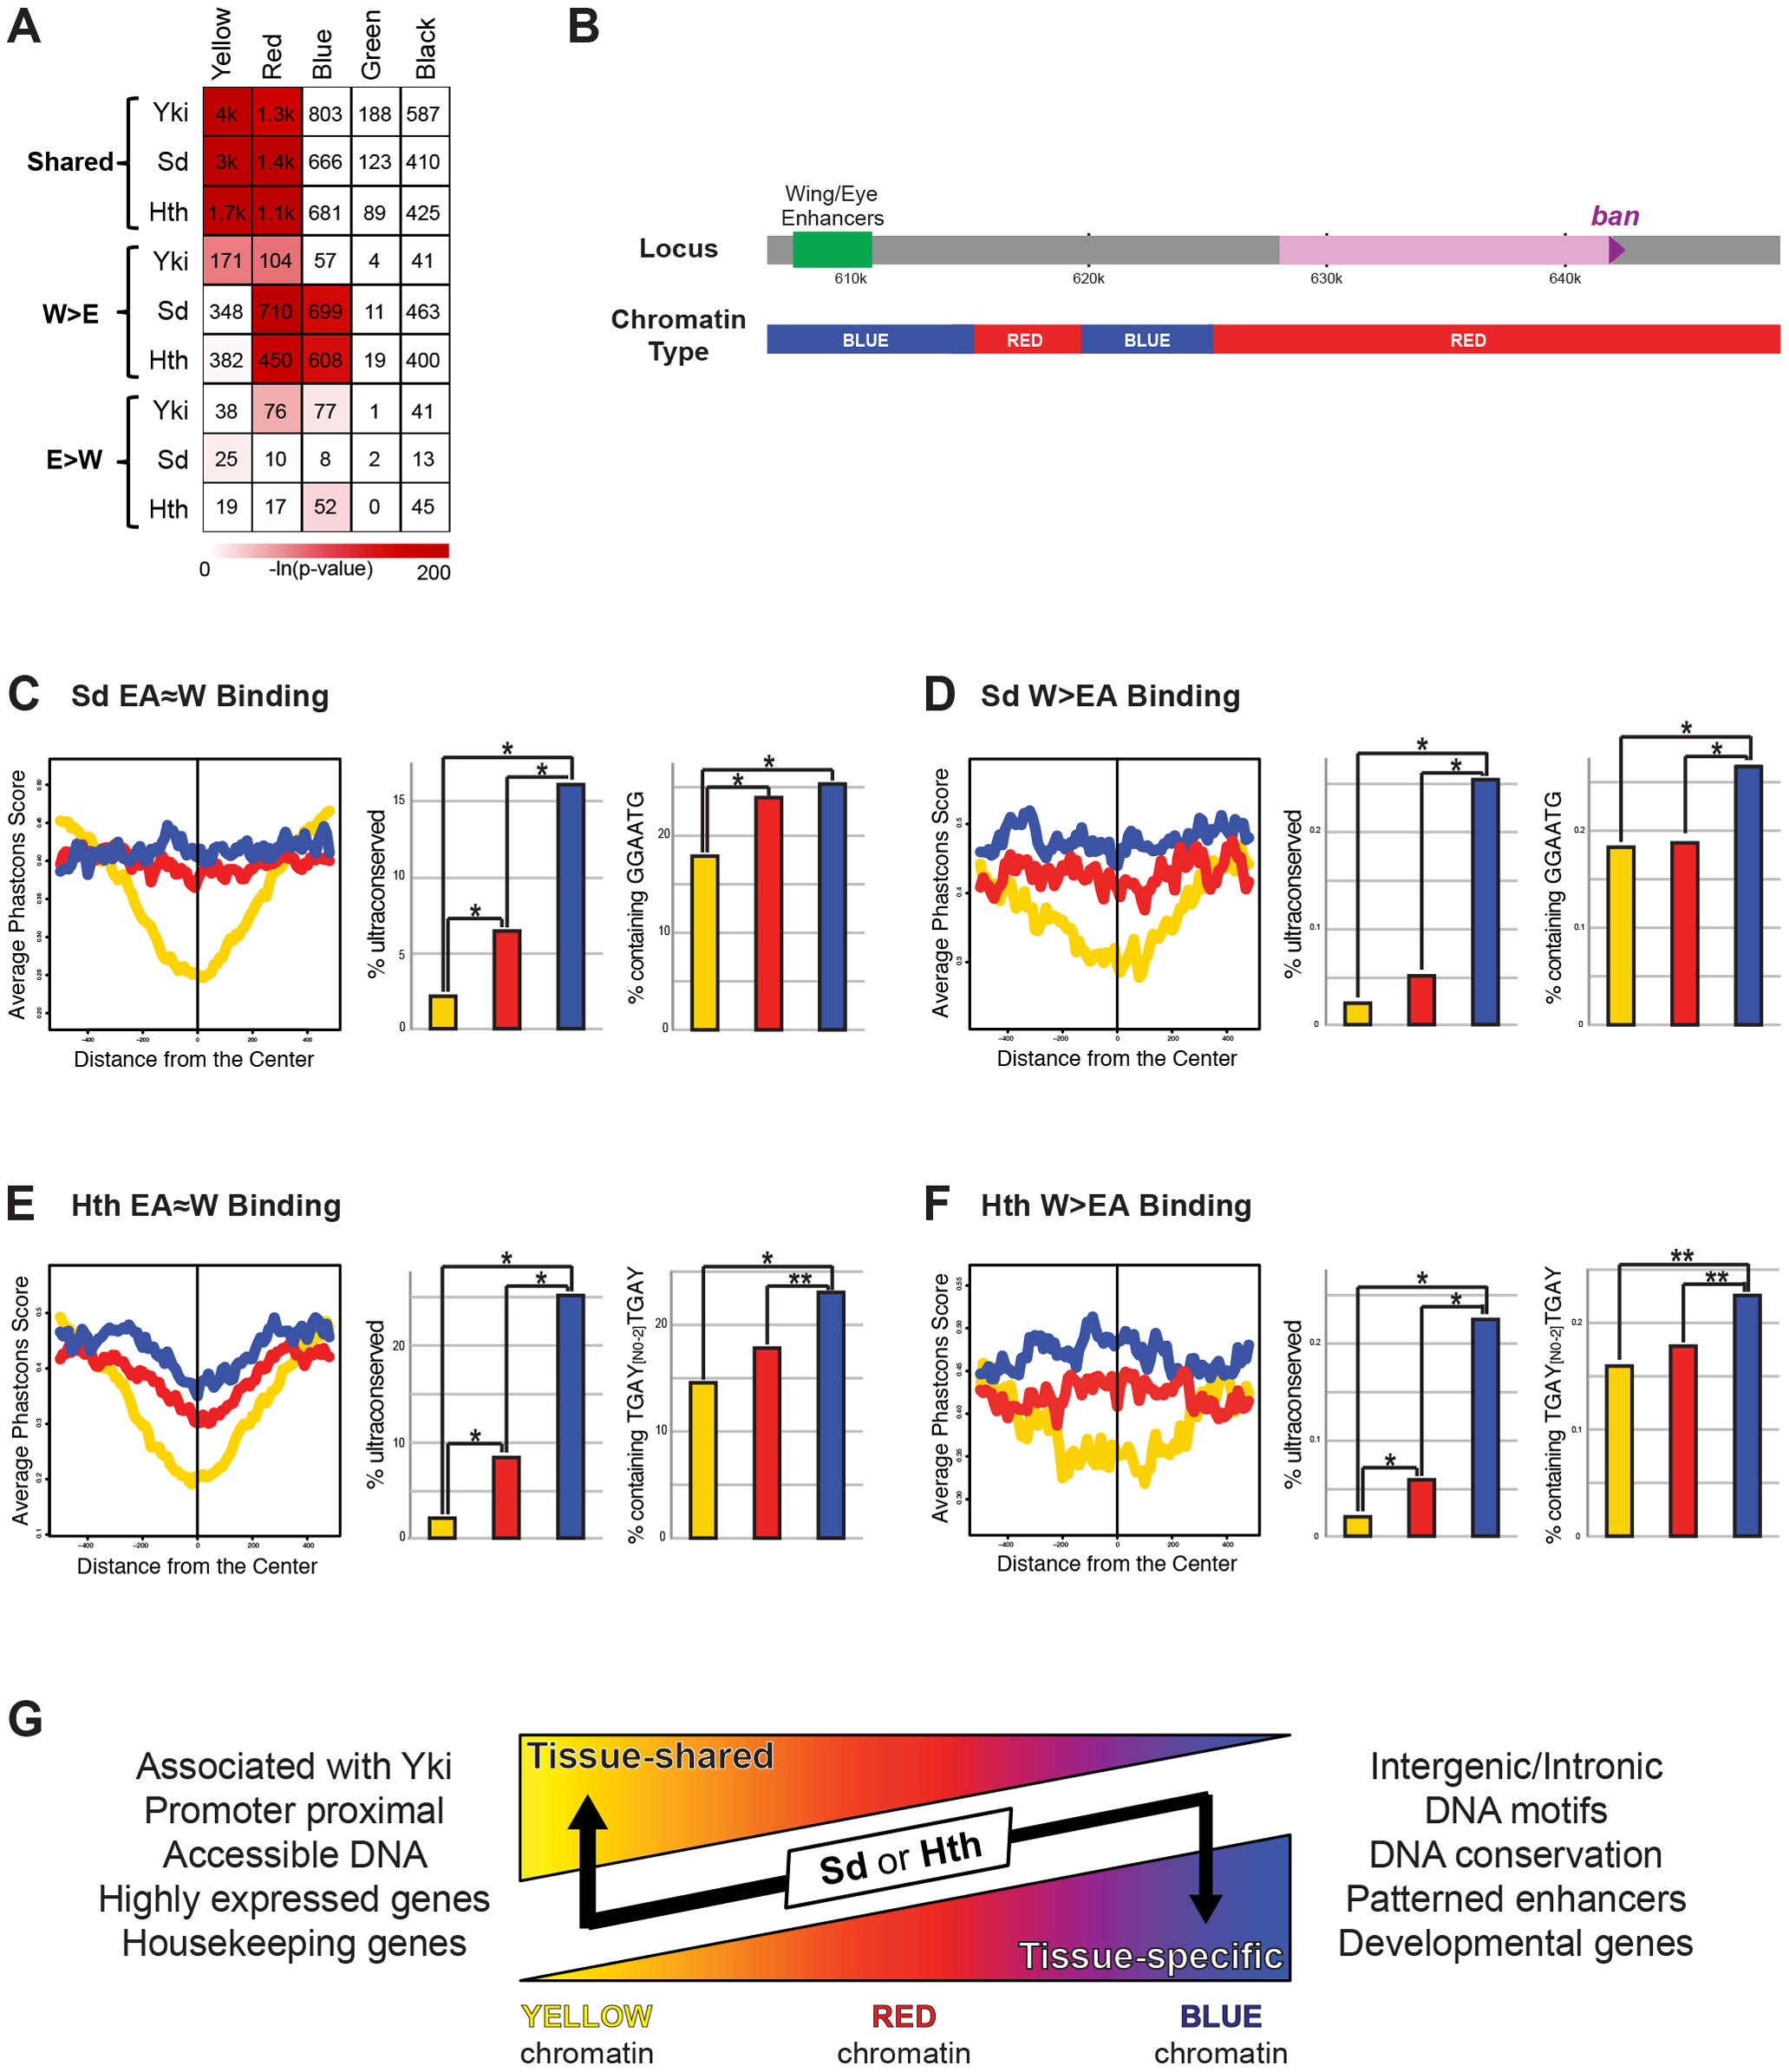 Relationship between Yki, Sd, and Hth binding and chromatin state.